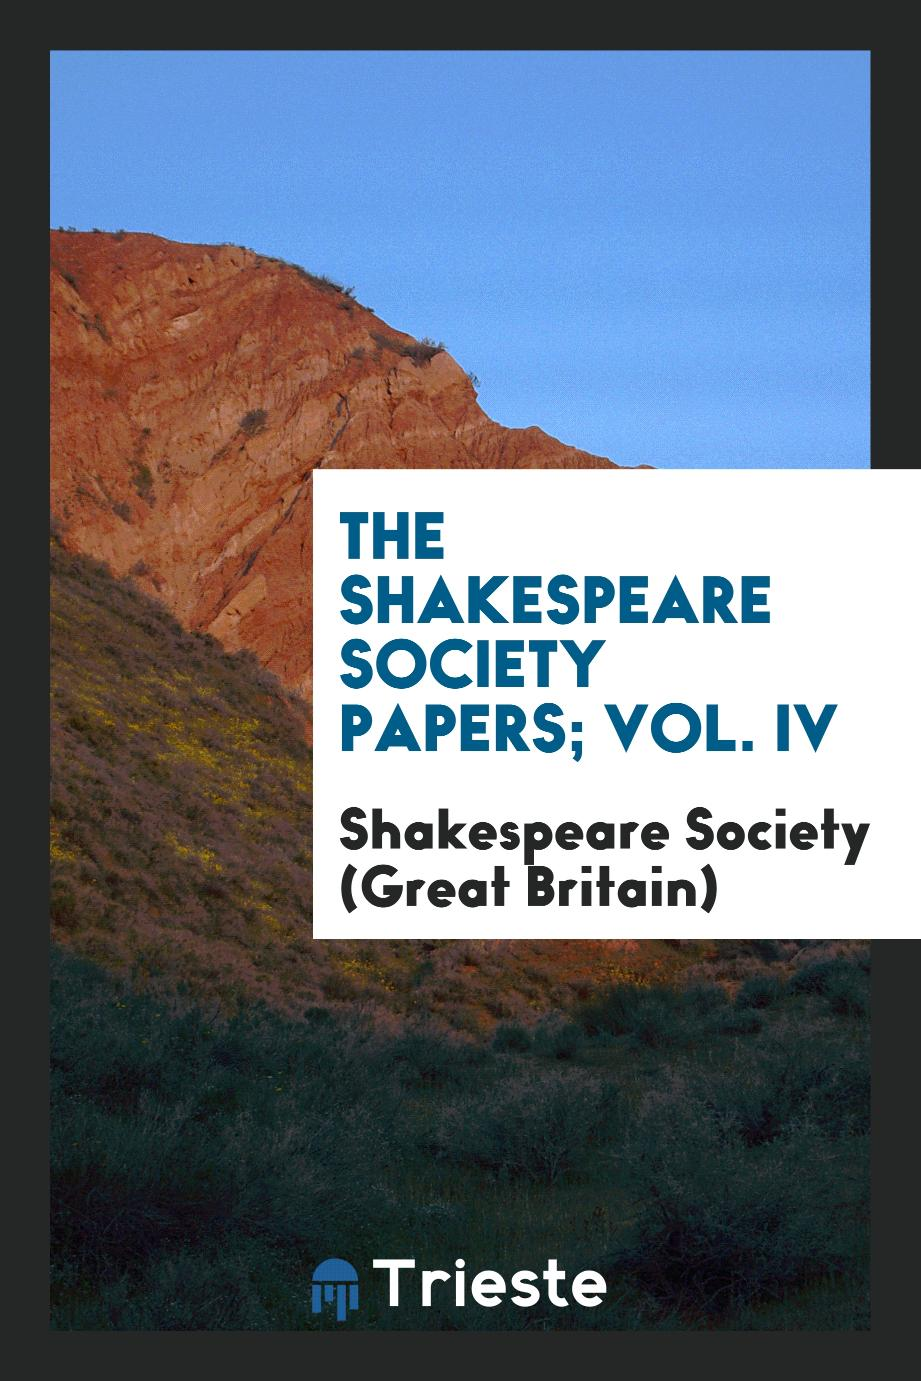 The Shakespeare Society Papers; Vol. IV